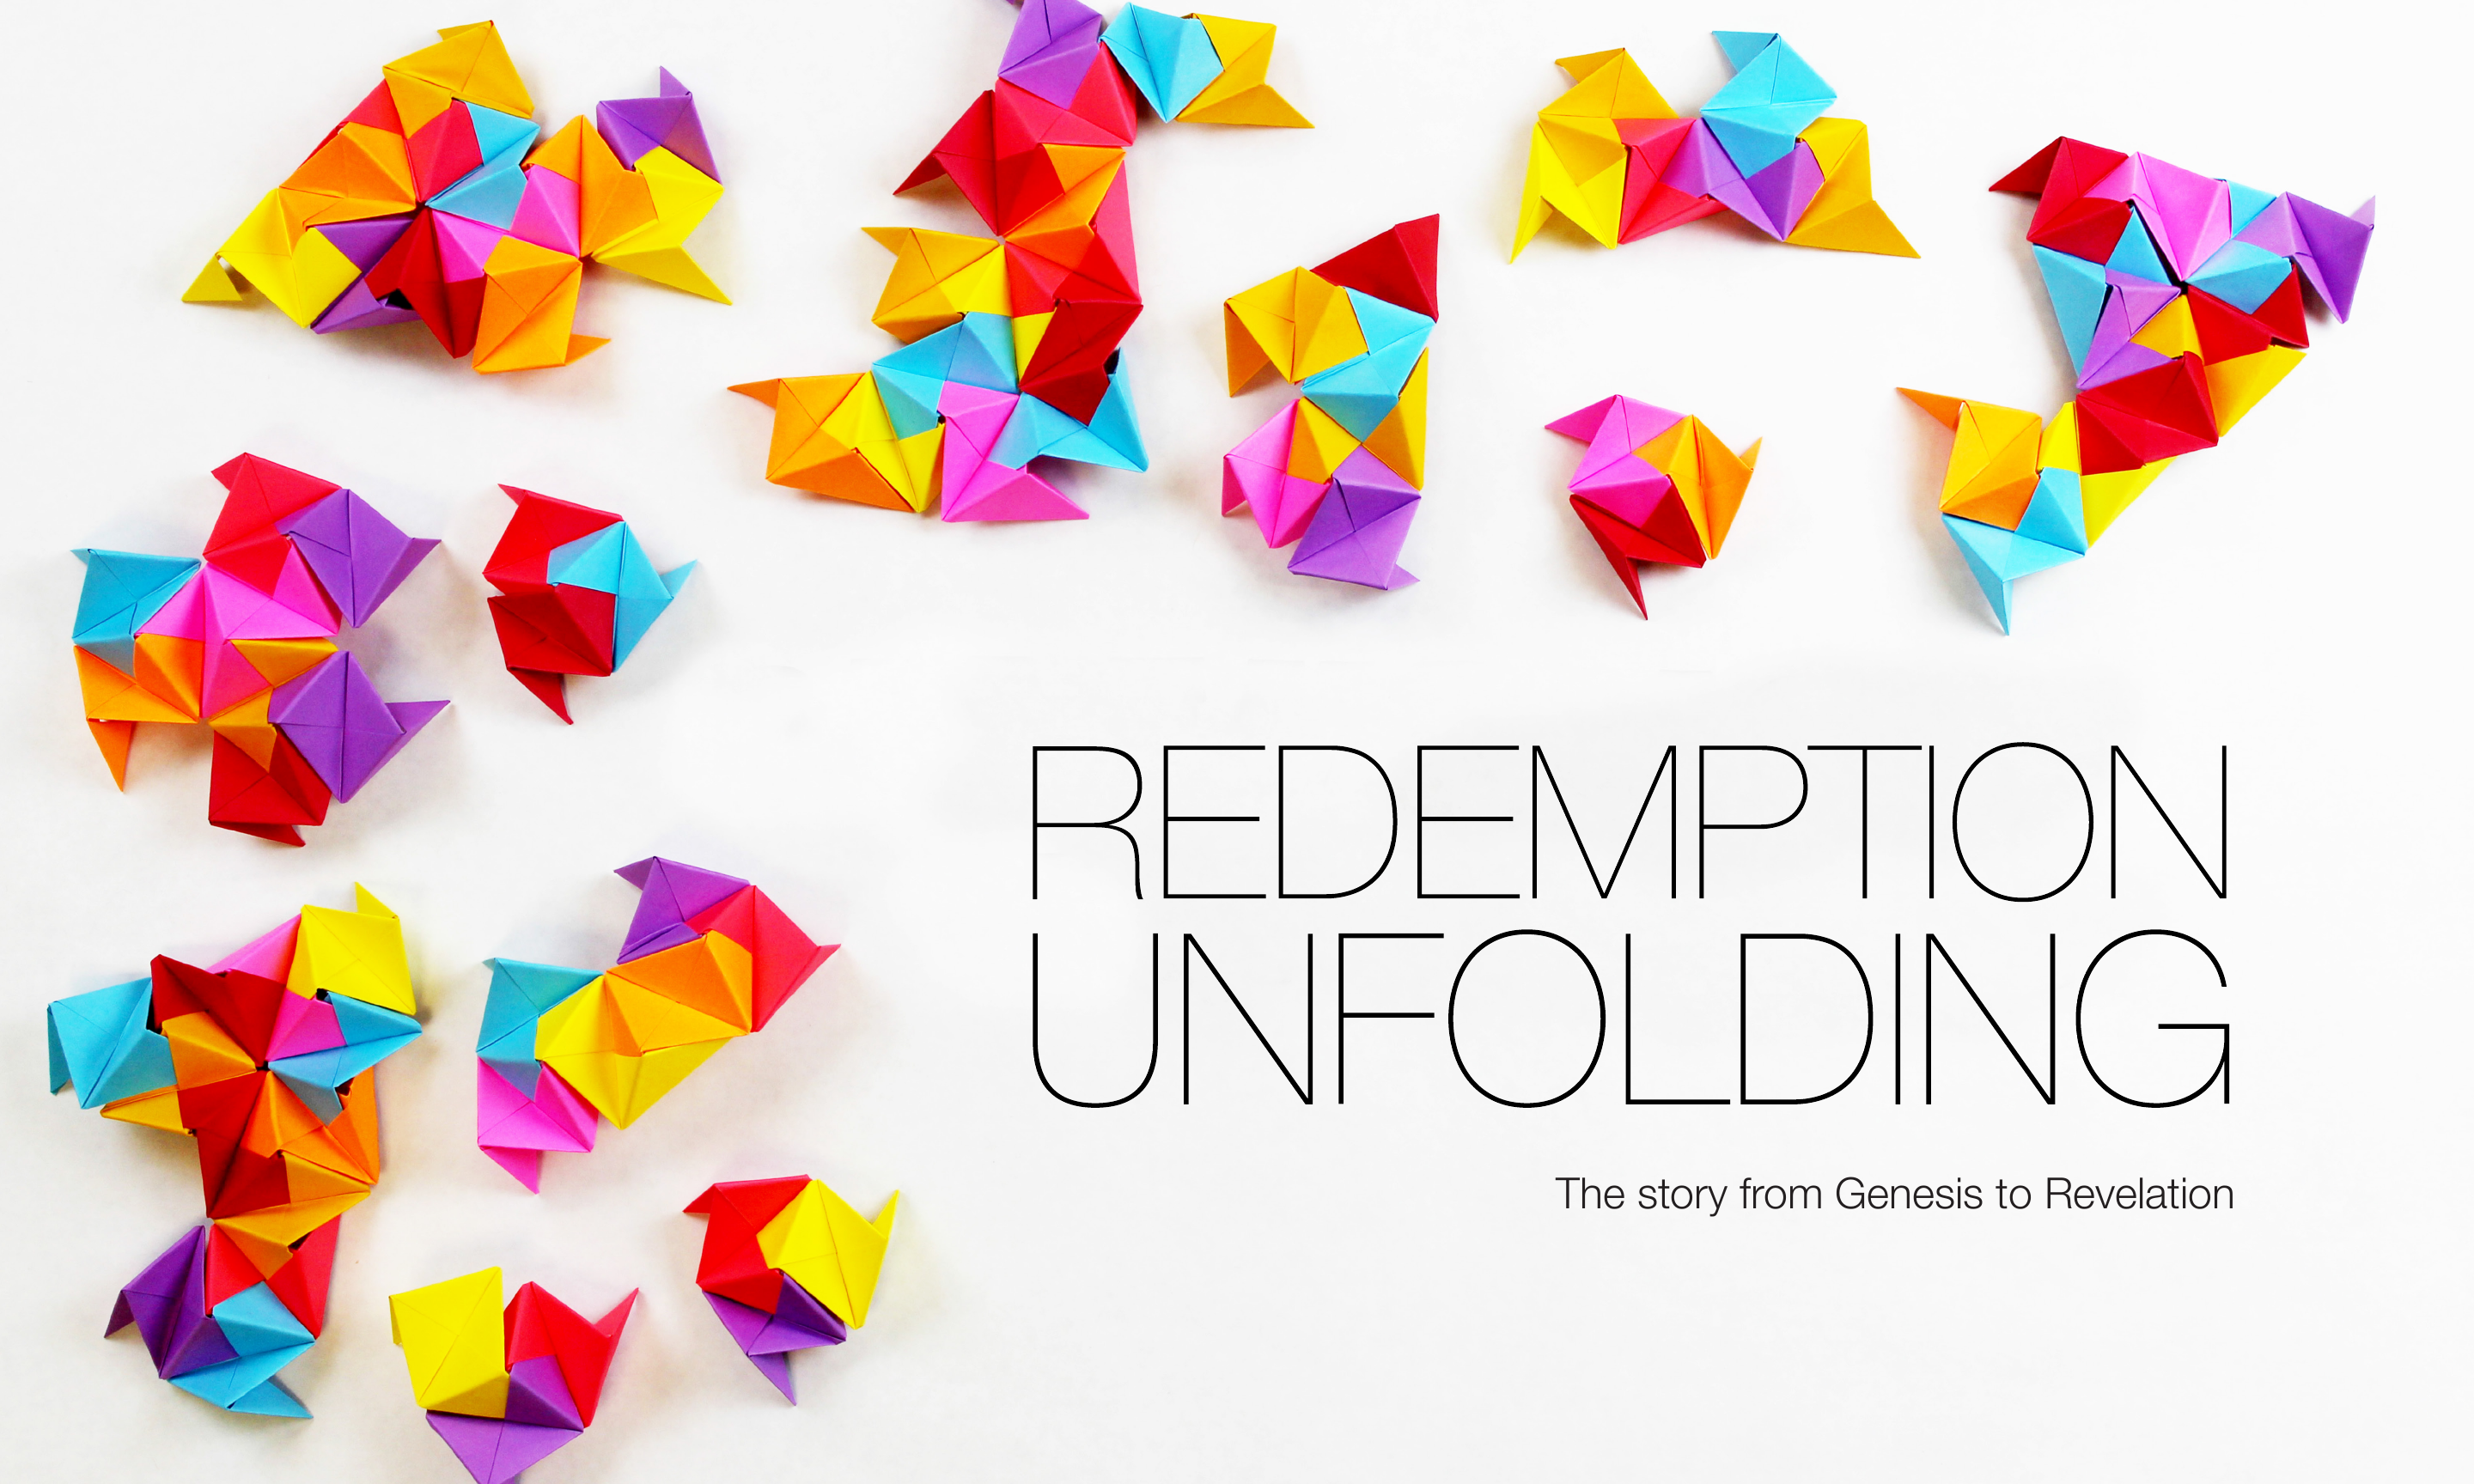 Redemption Unfolding